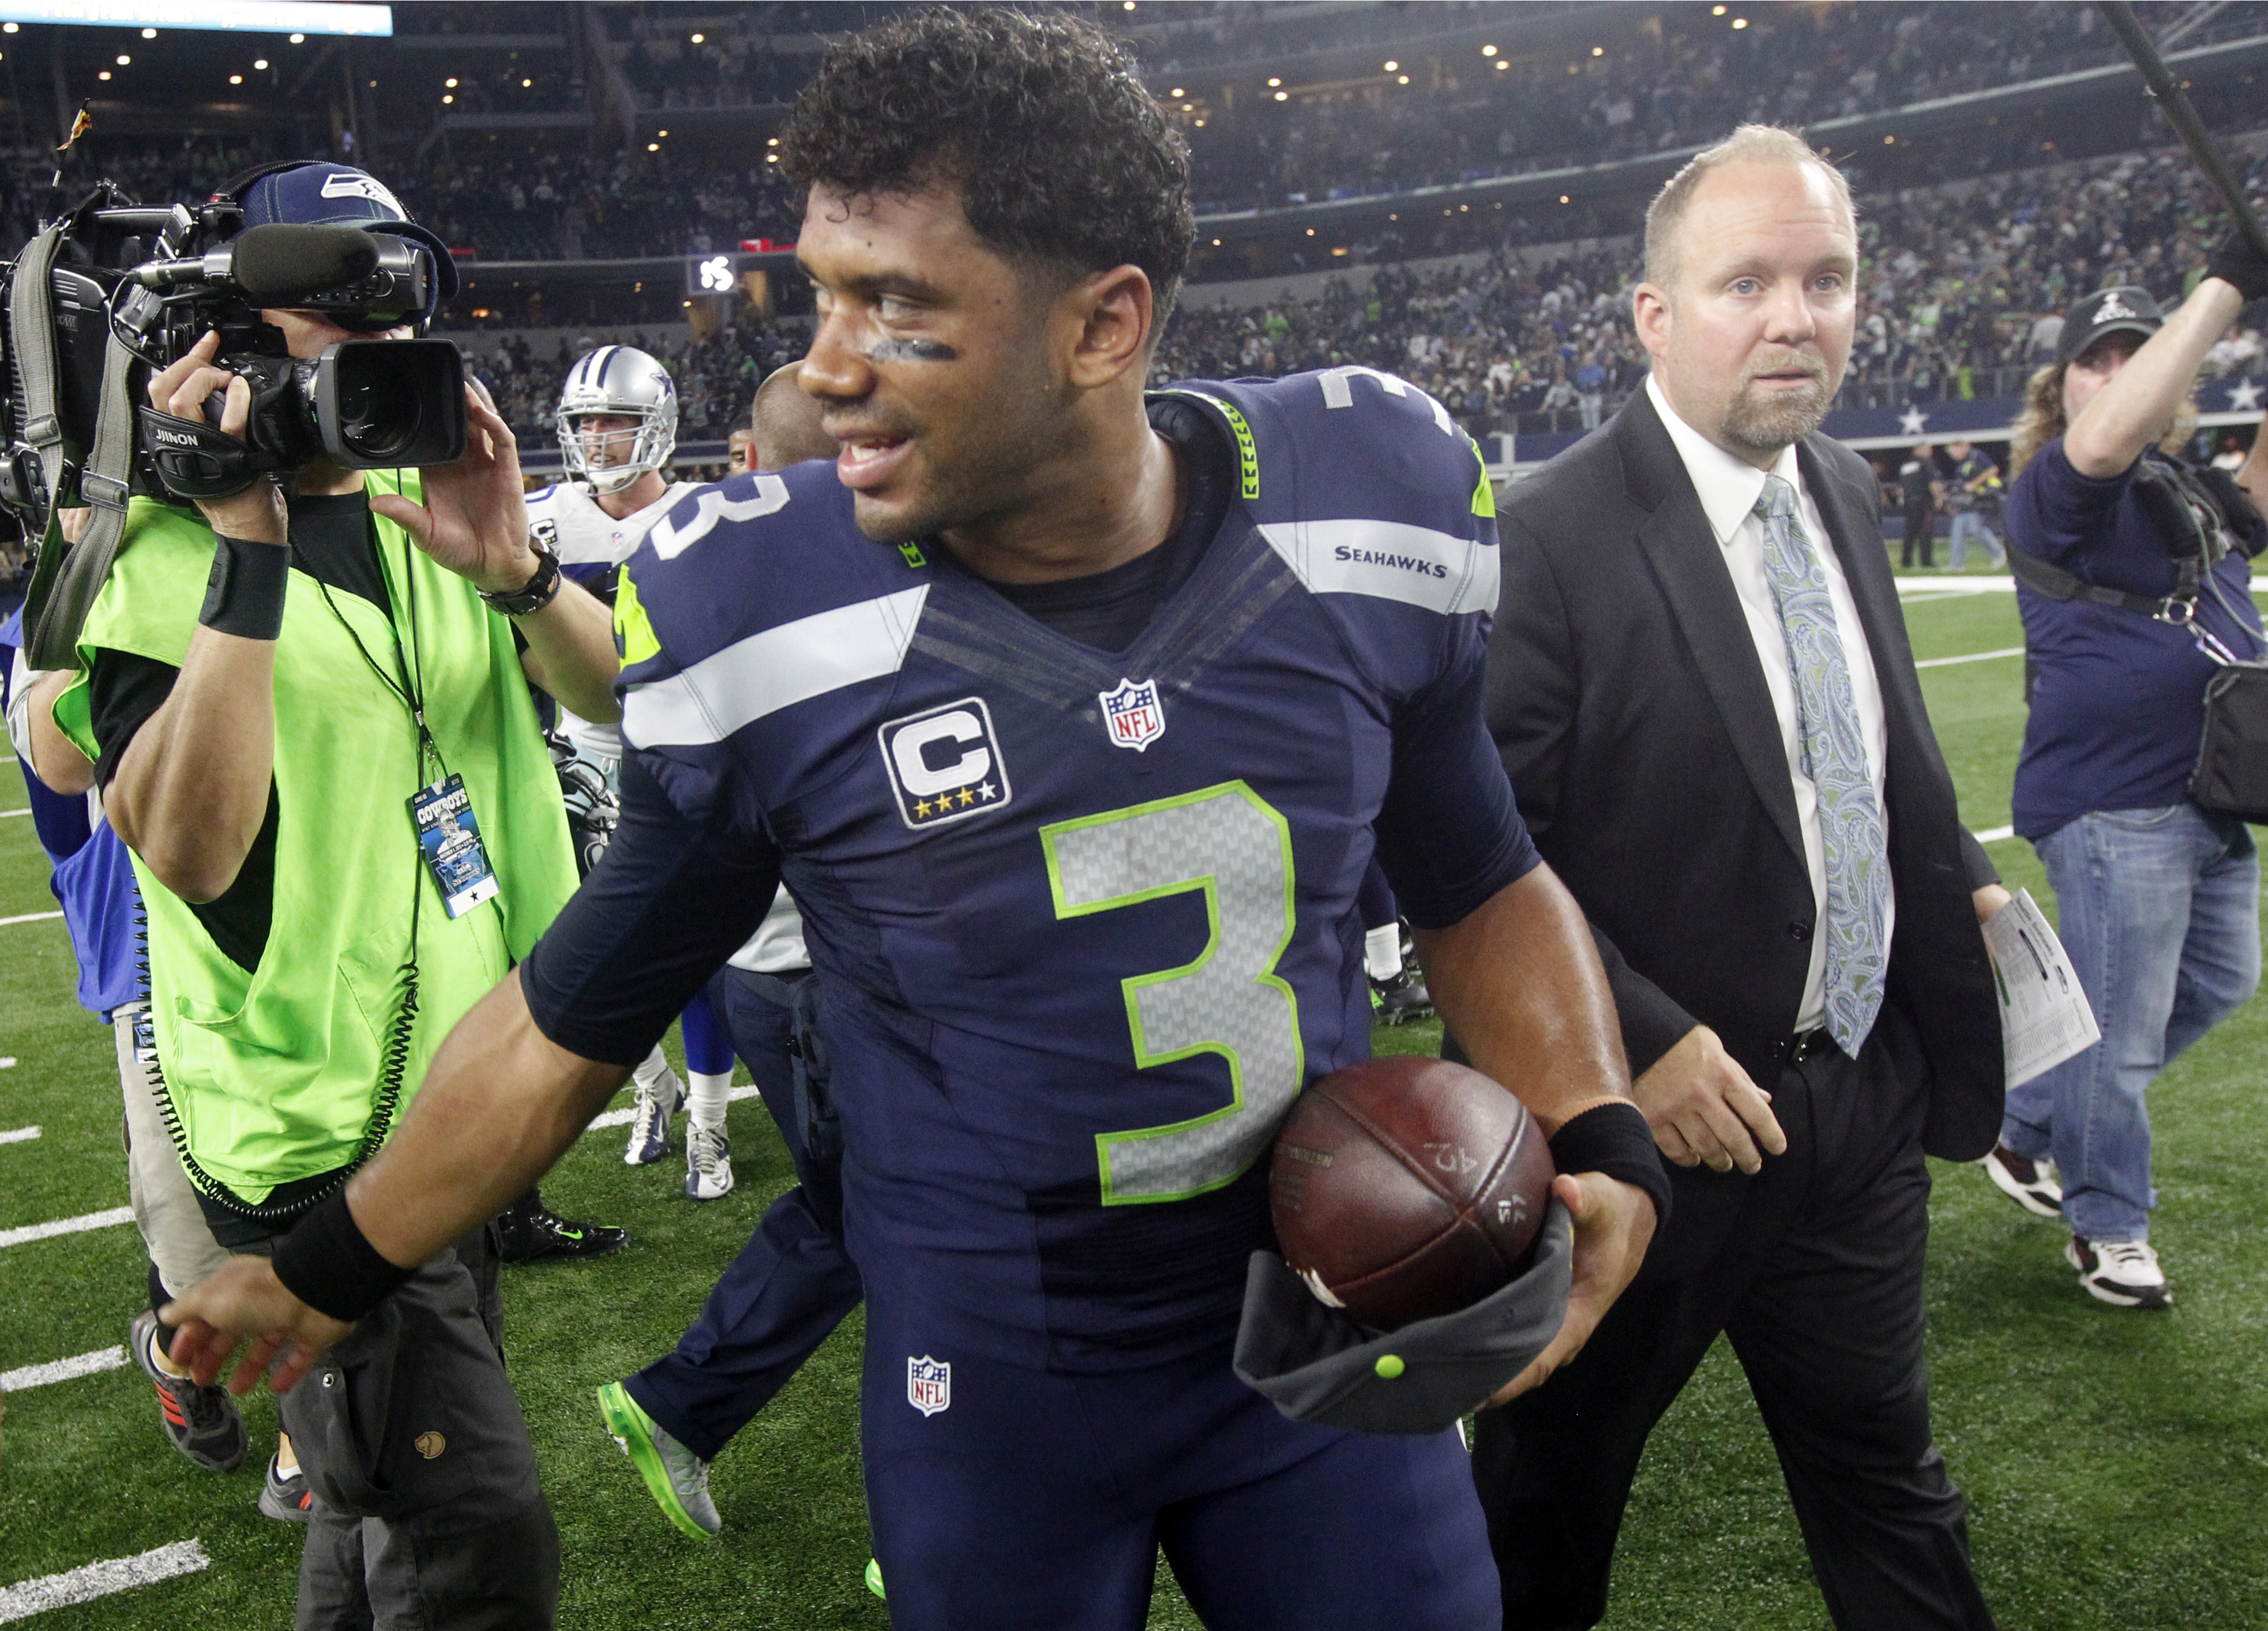 Seattle Seahawks' Russell Wilson (3) walks off the field after an NFL football game against the Dallas Cowboys, Sunday, Nov. 1, 2015, in Arlington, Texas. The Seahawks won 13-12. (AP Photo/Michael Ainsworth)